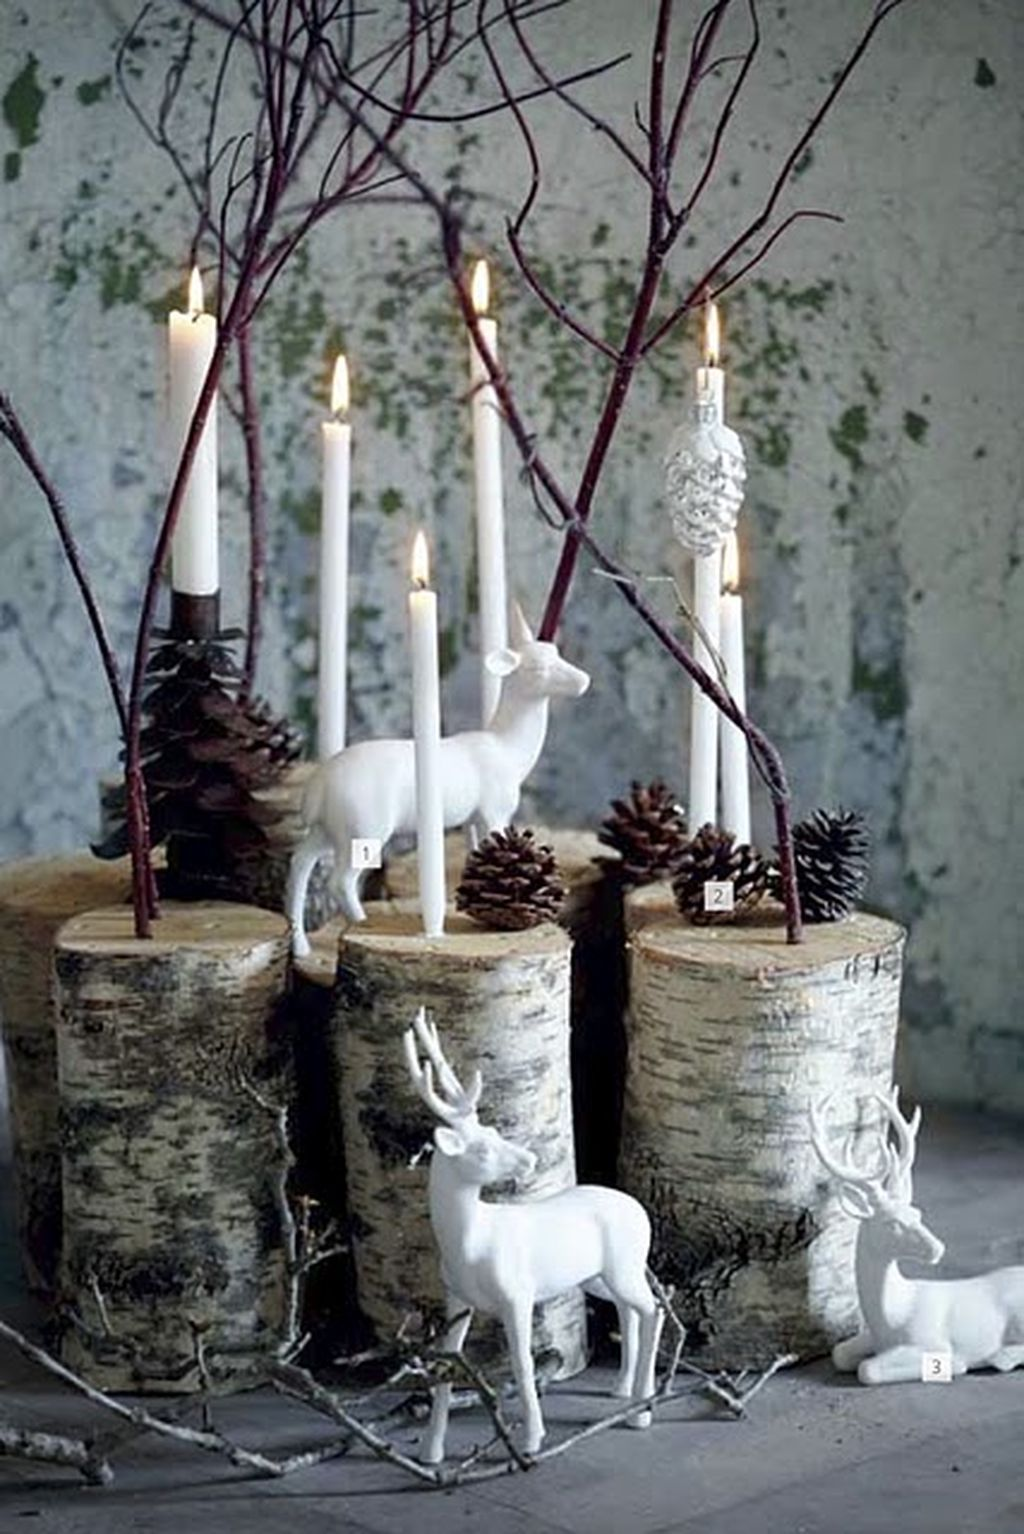 Inspiring Modern Rustic Christmas Centerpieces Ideas With Candles 94